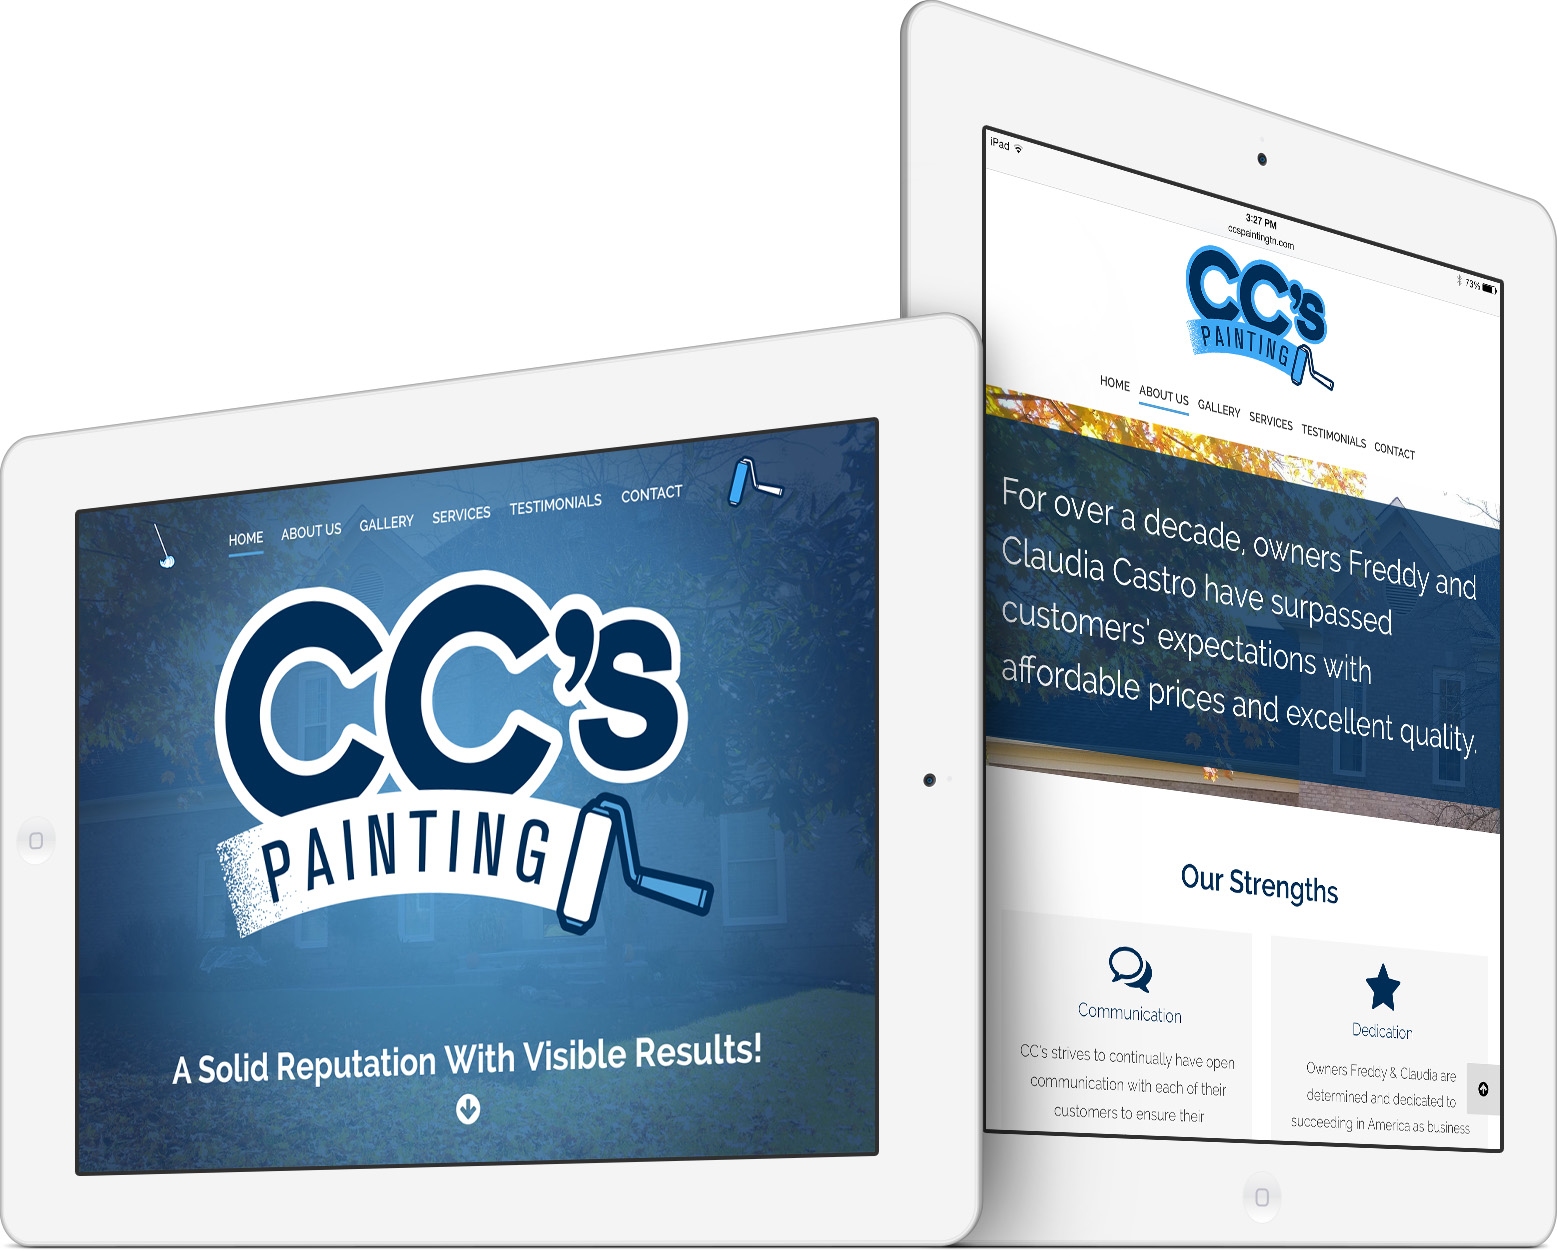 CC's Painting & Cleaning on an iPad